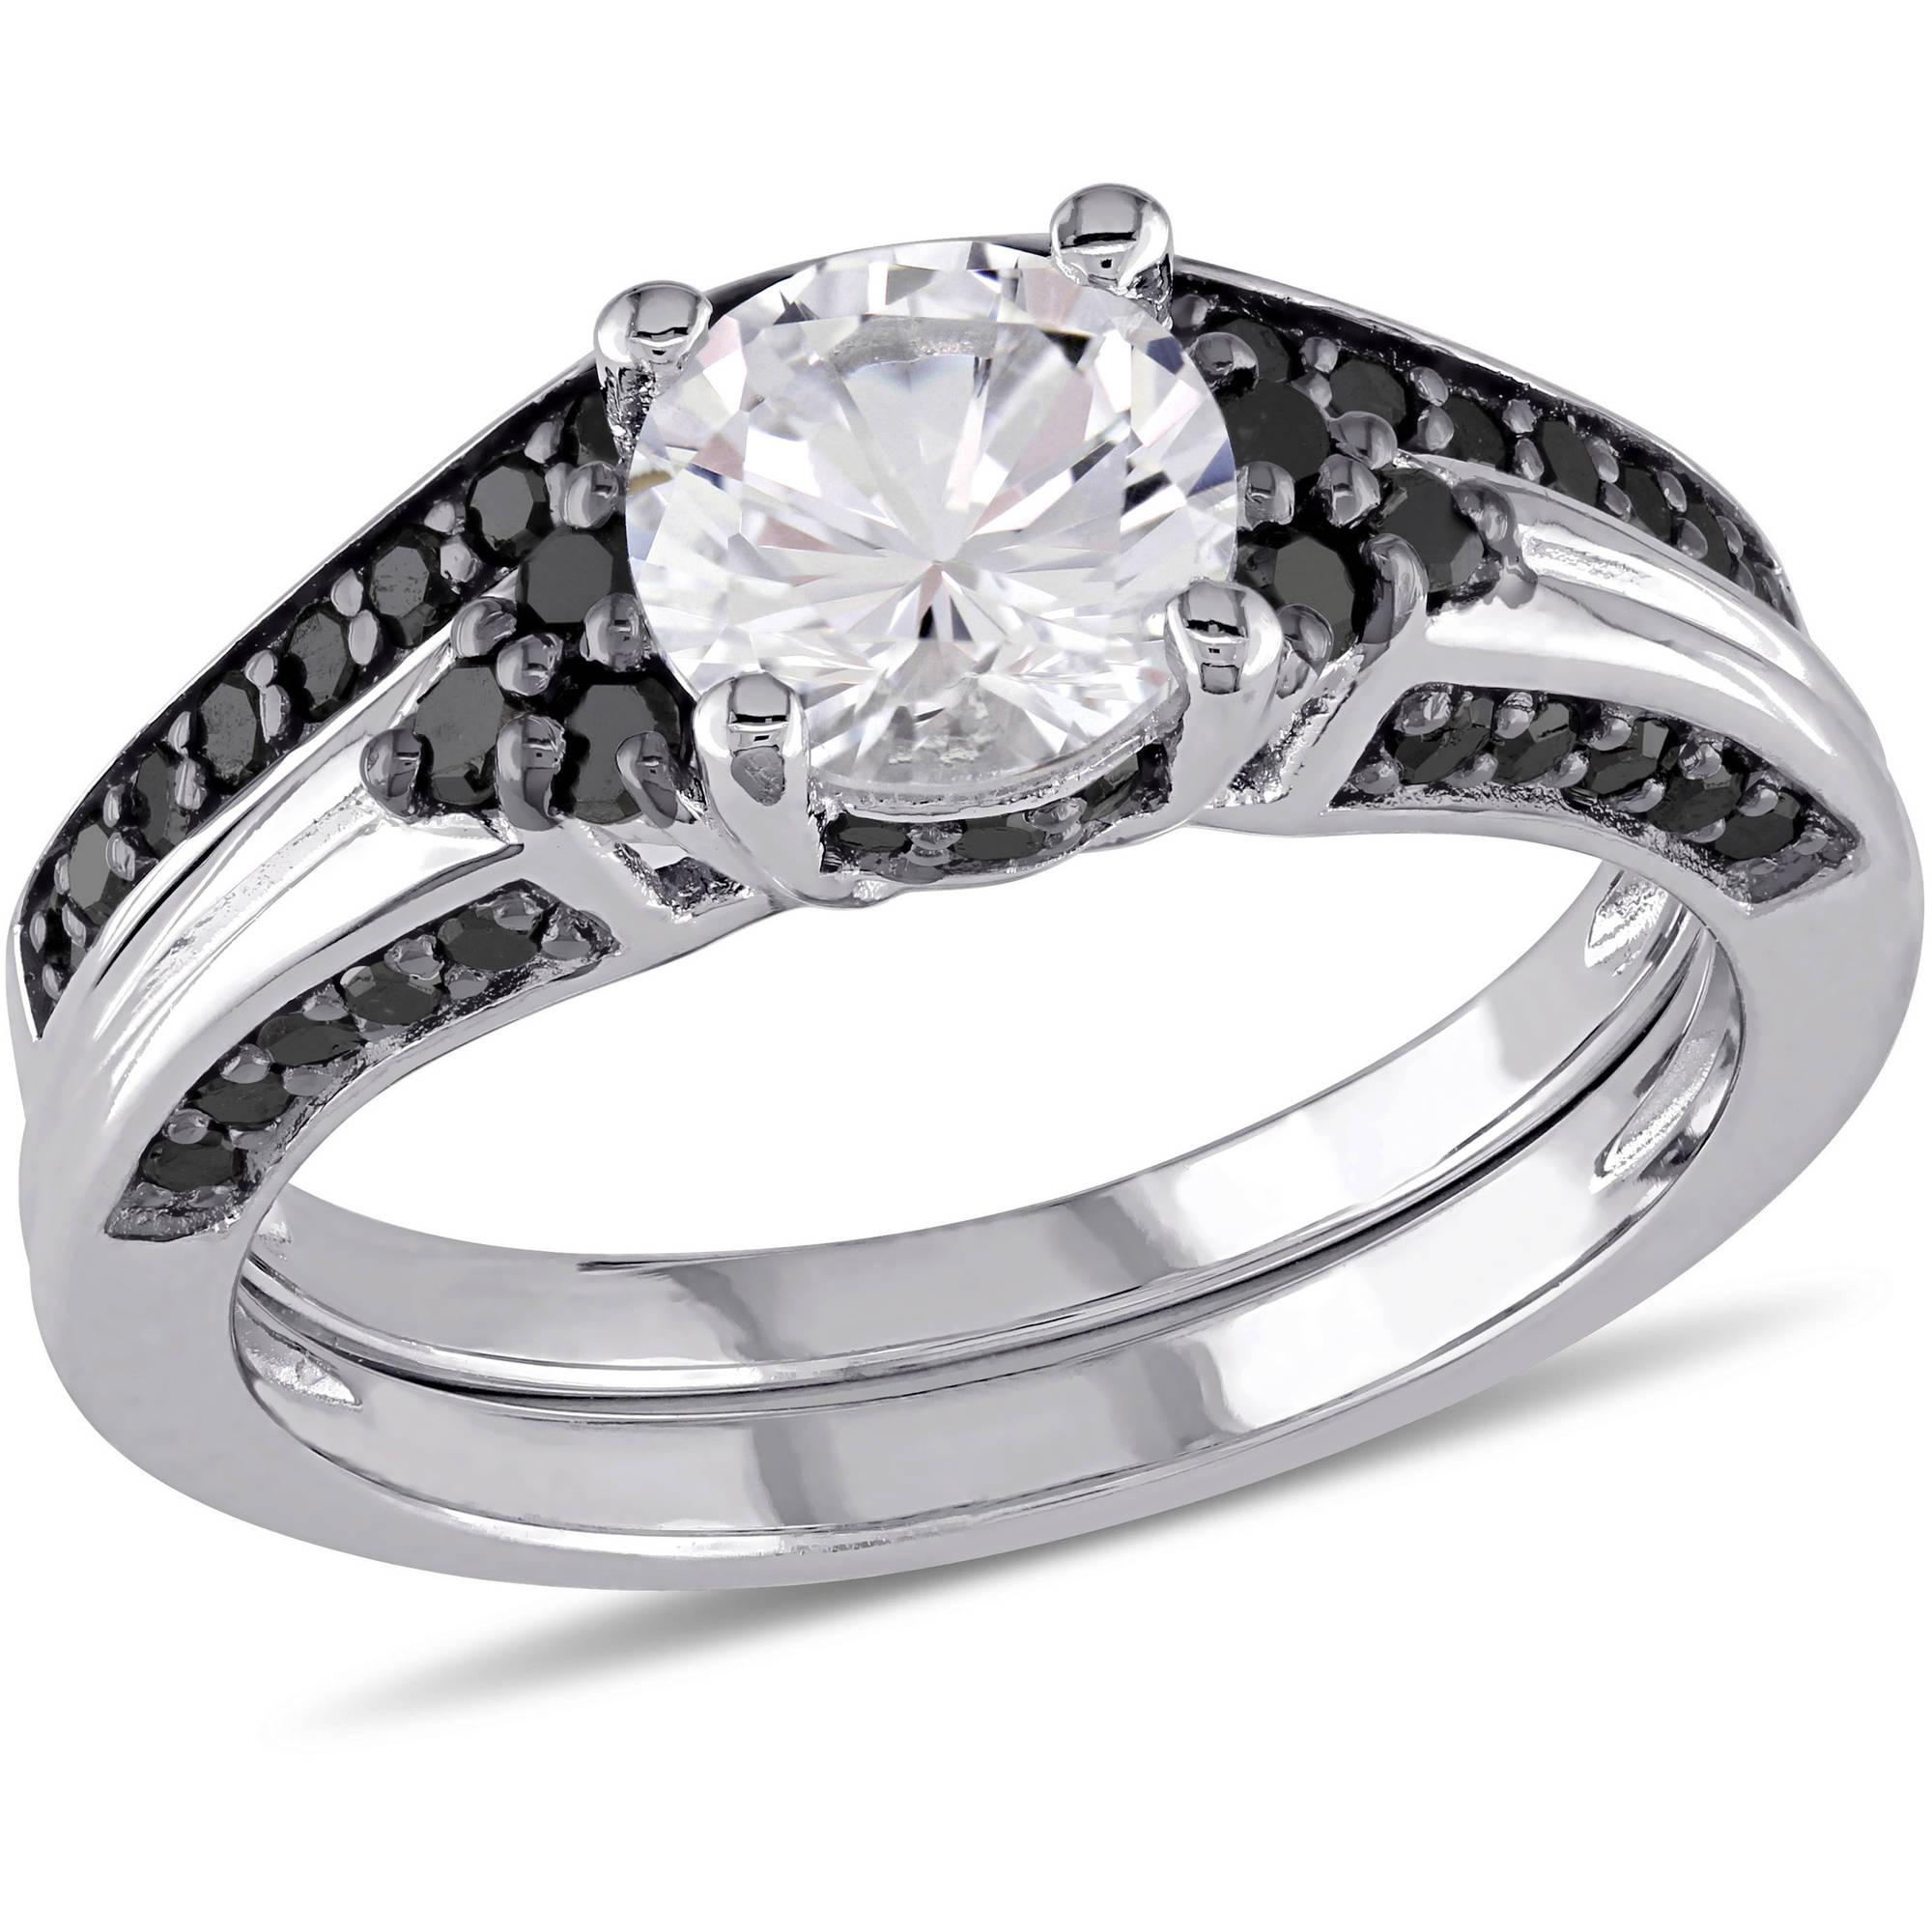 1-3 8 Carat T.G.W. Created White Sapphire and 3 5 Carat T.W. Black Diamond Sterling Silver Bridal Set by Generic